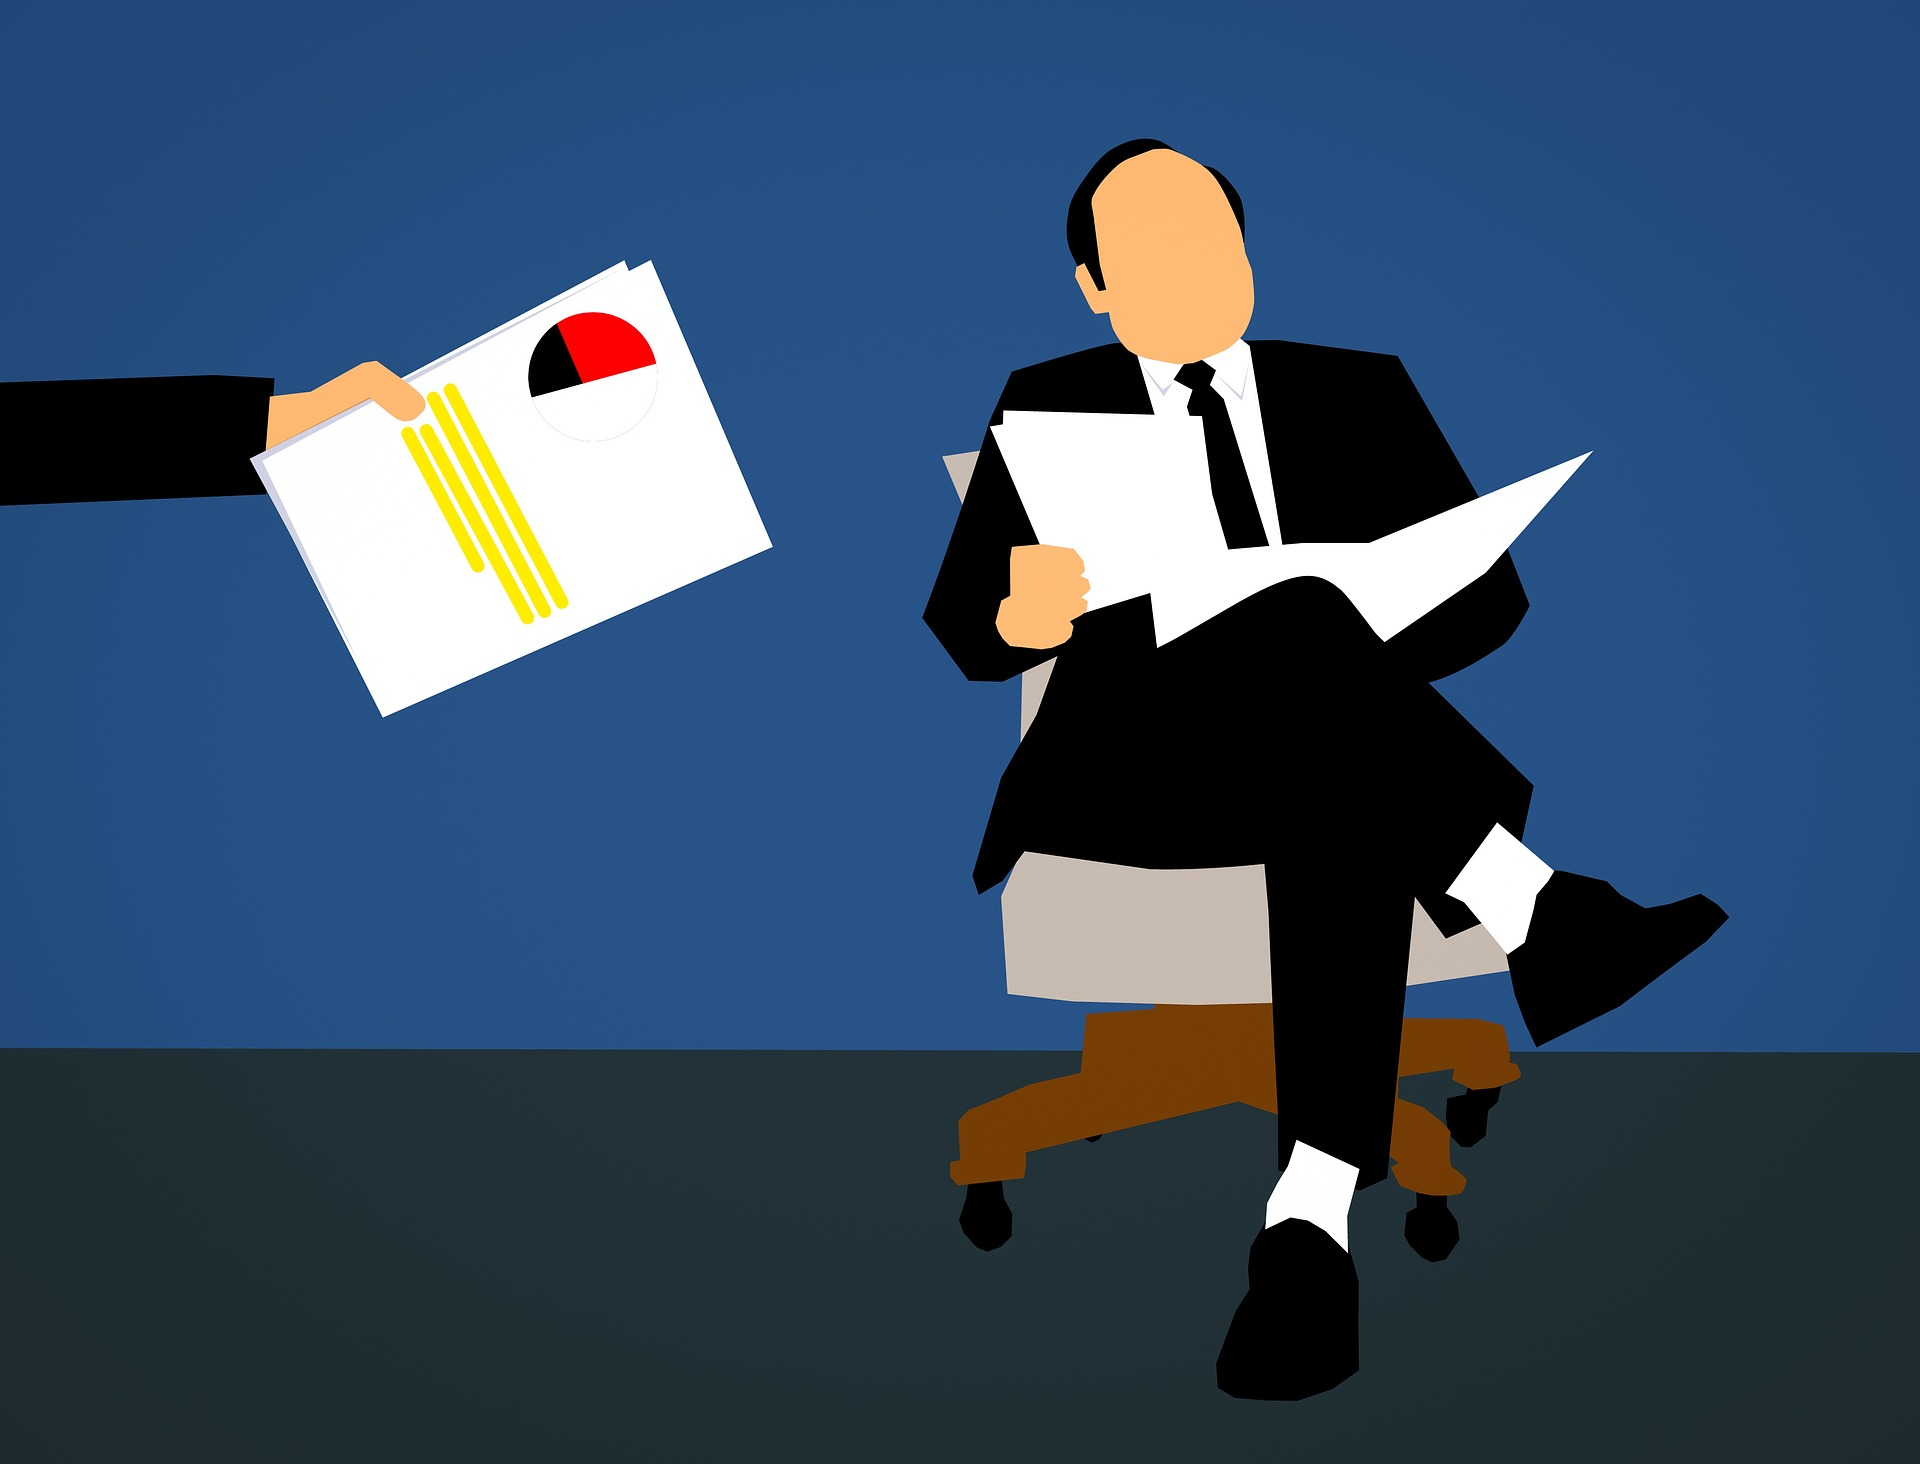 Hire Freelancers: 7 Guidelines to Recruit Top Talent